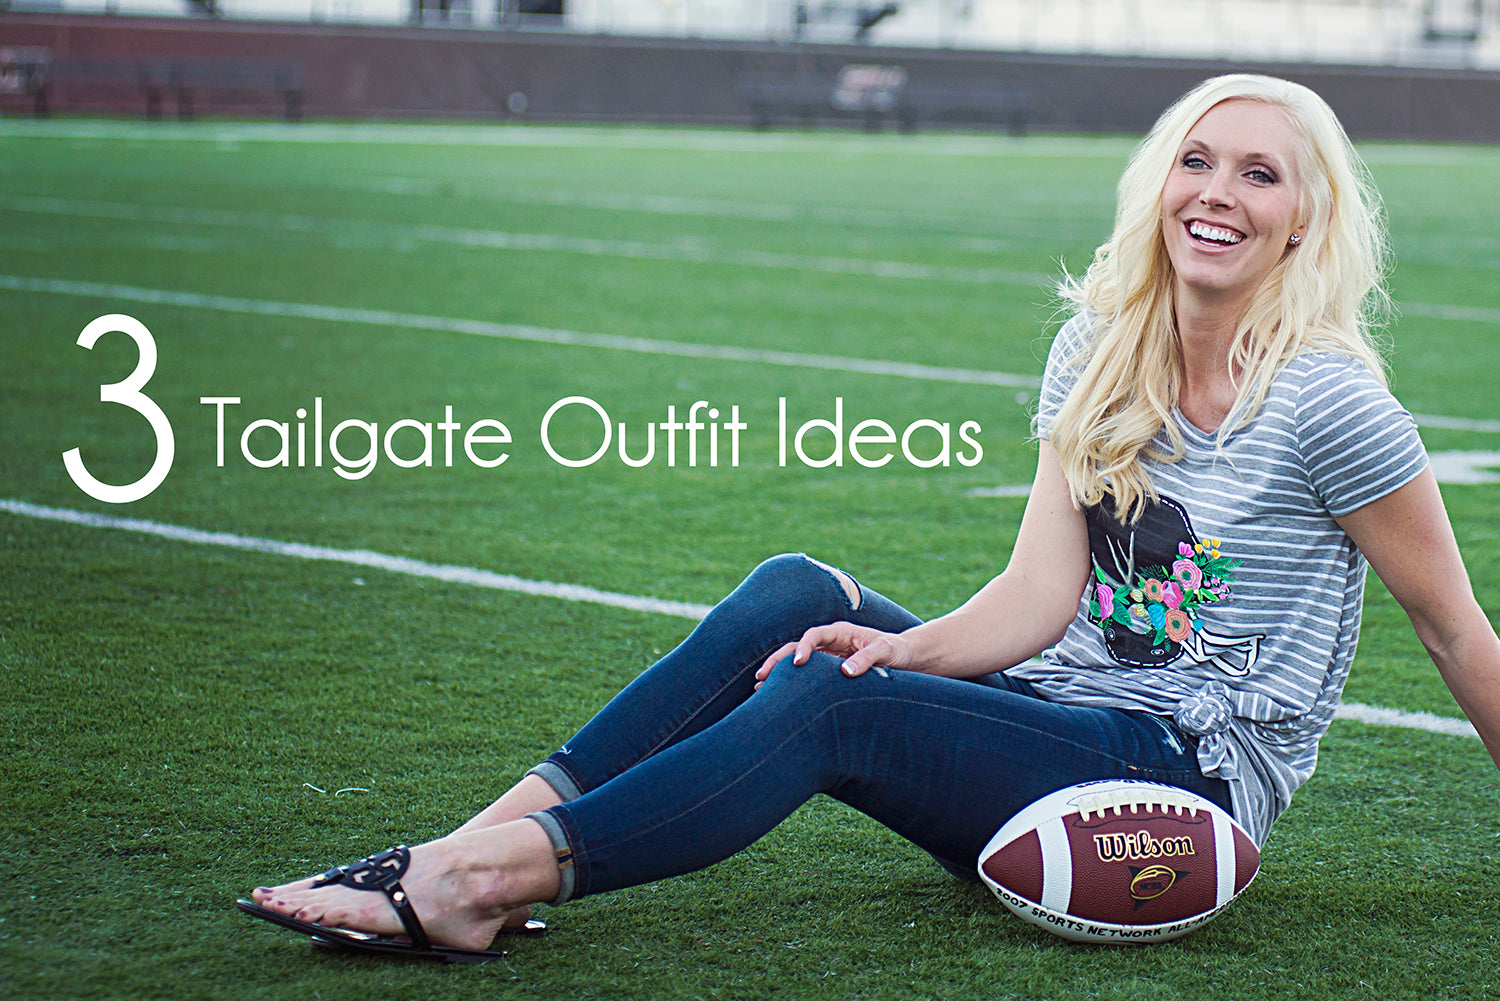 3 Trendy Tailgate Outfit Ideas for College Football Game at Eccentrics Boutique